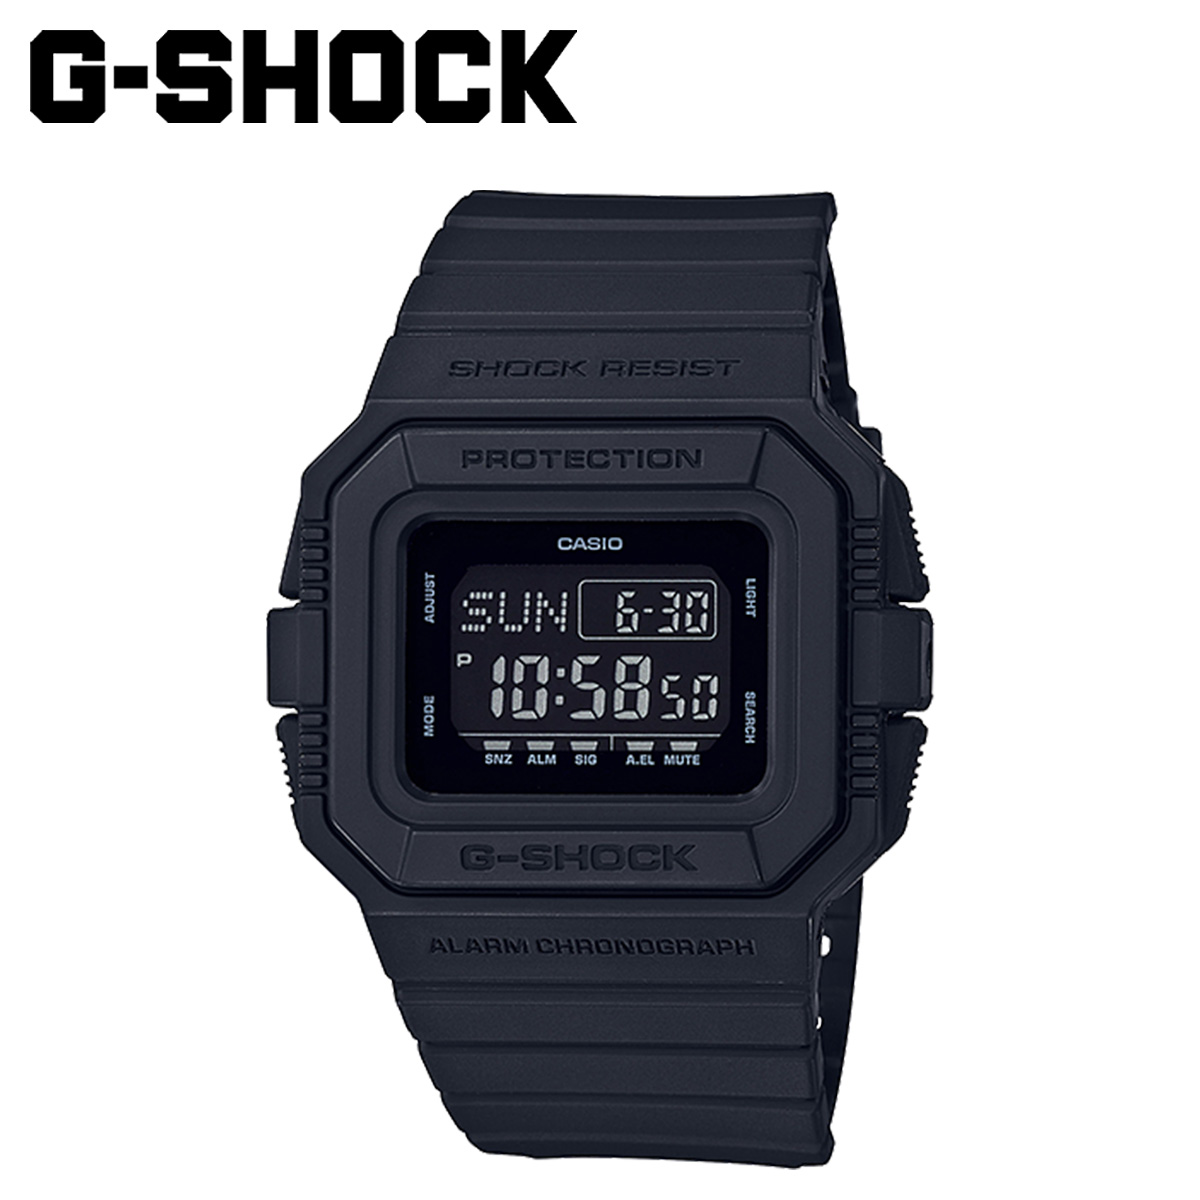 Dw Shop Casio Casio G Shock Watch Dw D5500bb 1jf Black Black Men Gap Dis 5 16 Reentry Load